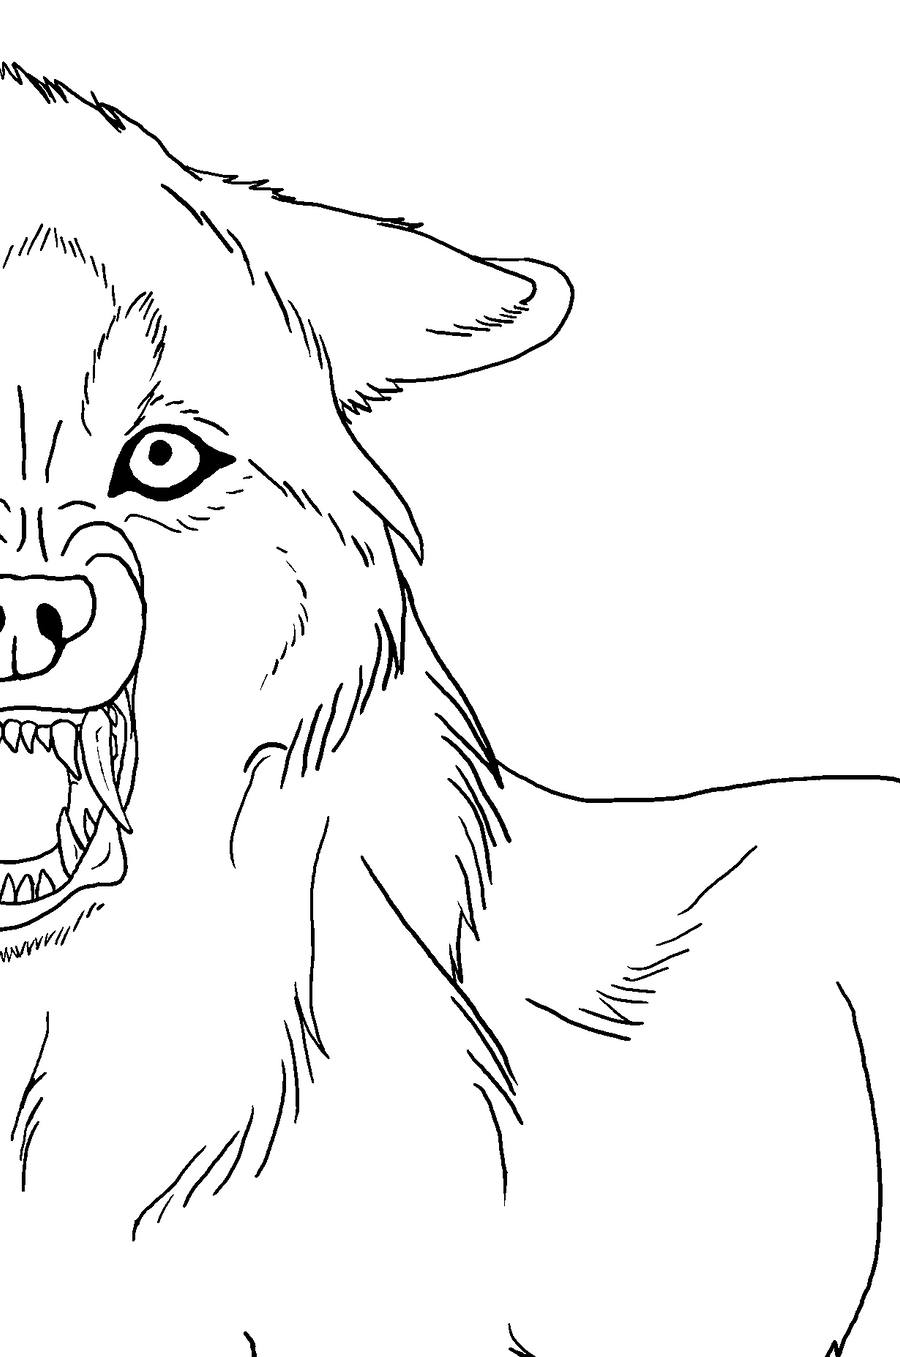 Howling Wolf Line Drawing_pdf  Docscrewbanks